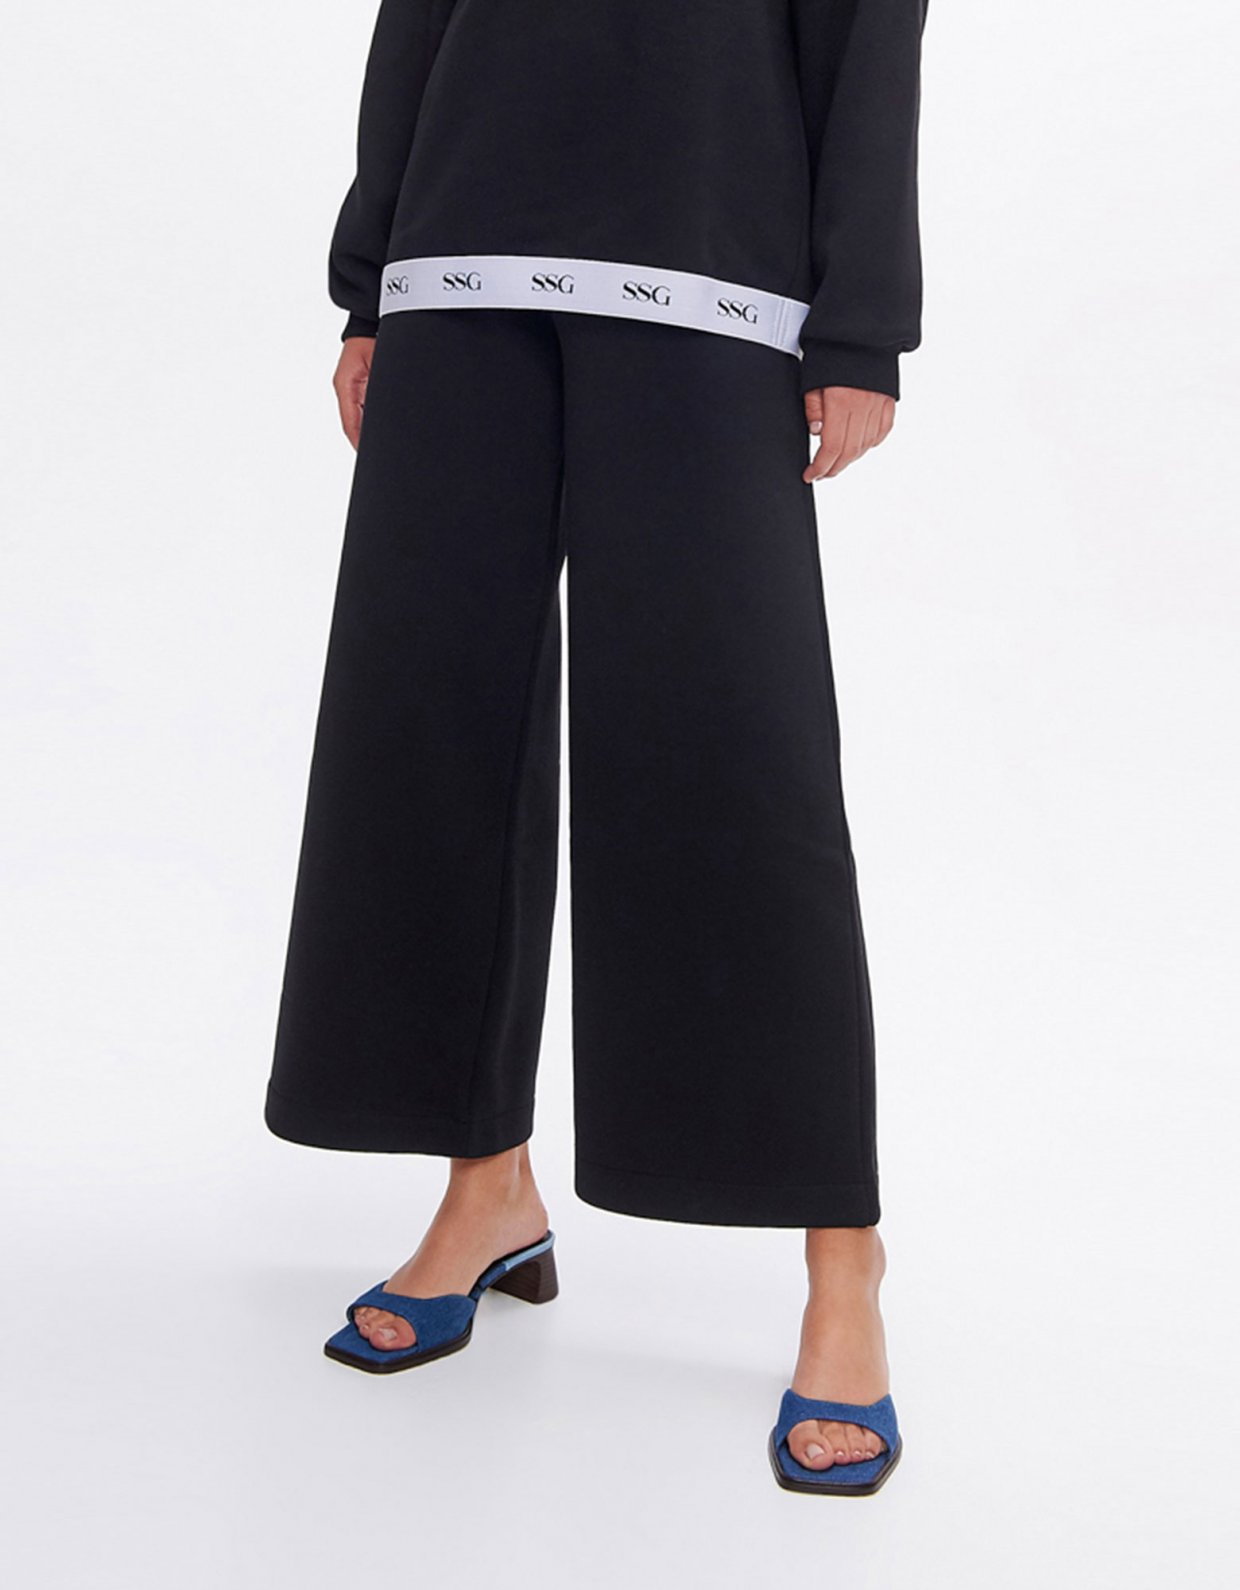 Sunset go Valerie black wide leg pants